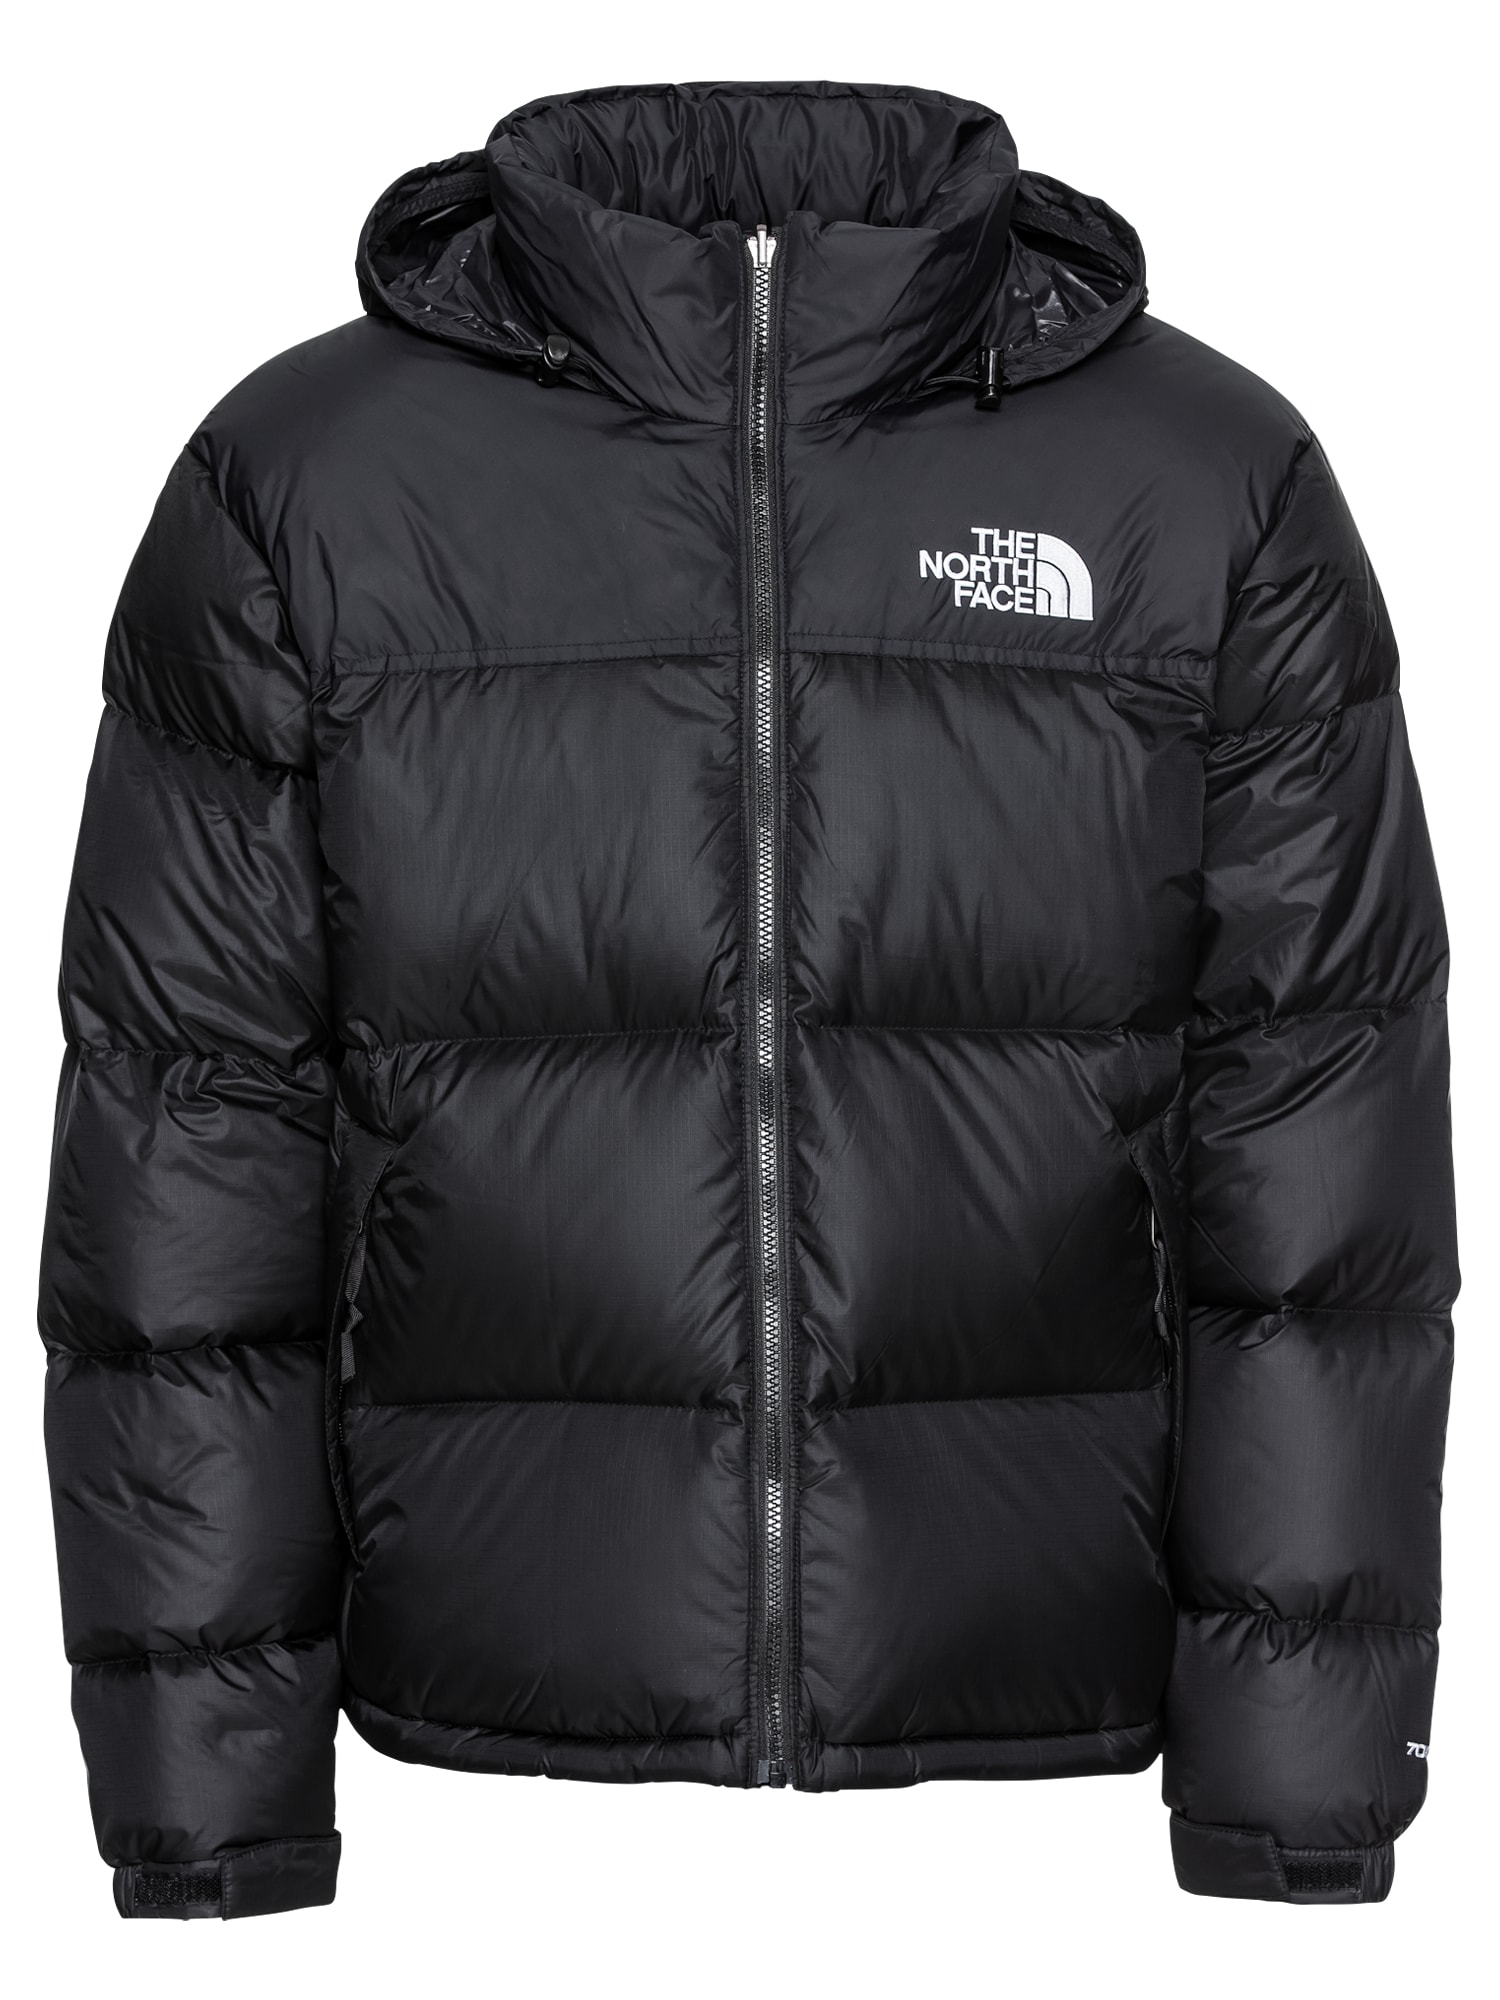 Daunenjacke 'M 1996 RTO NUPTSE JKT' | Bekleidung > Jacken > Daunenjacken | The North Face